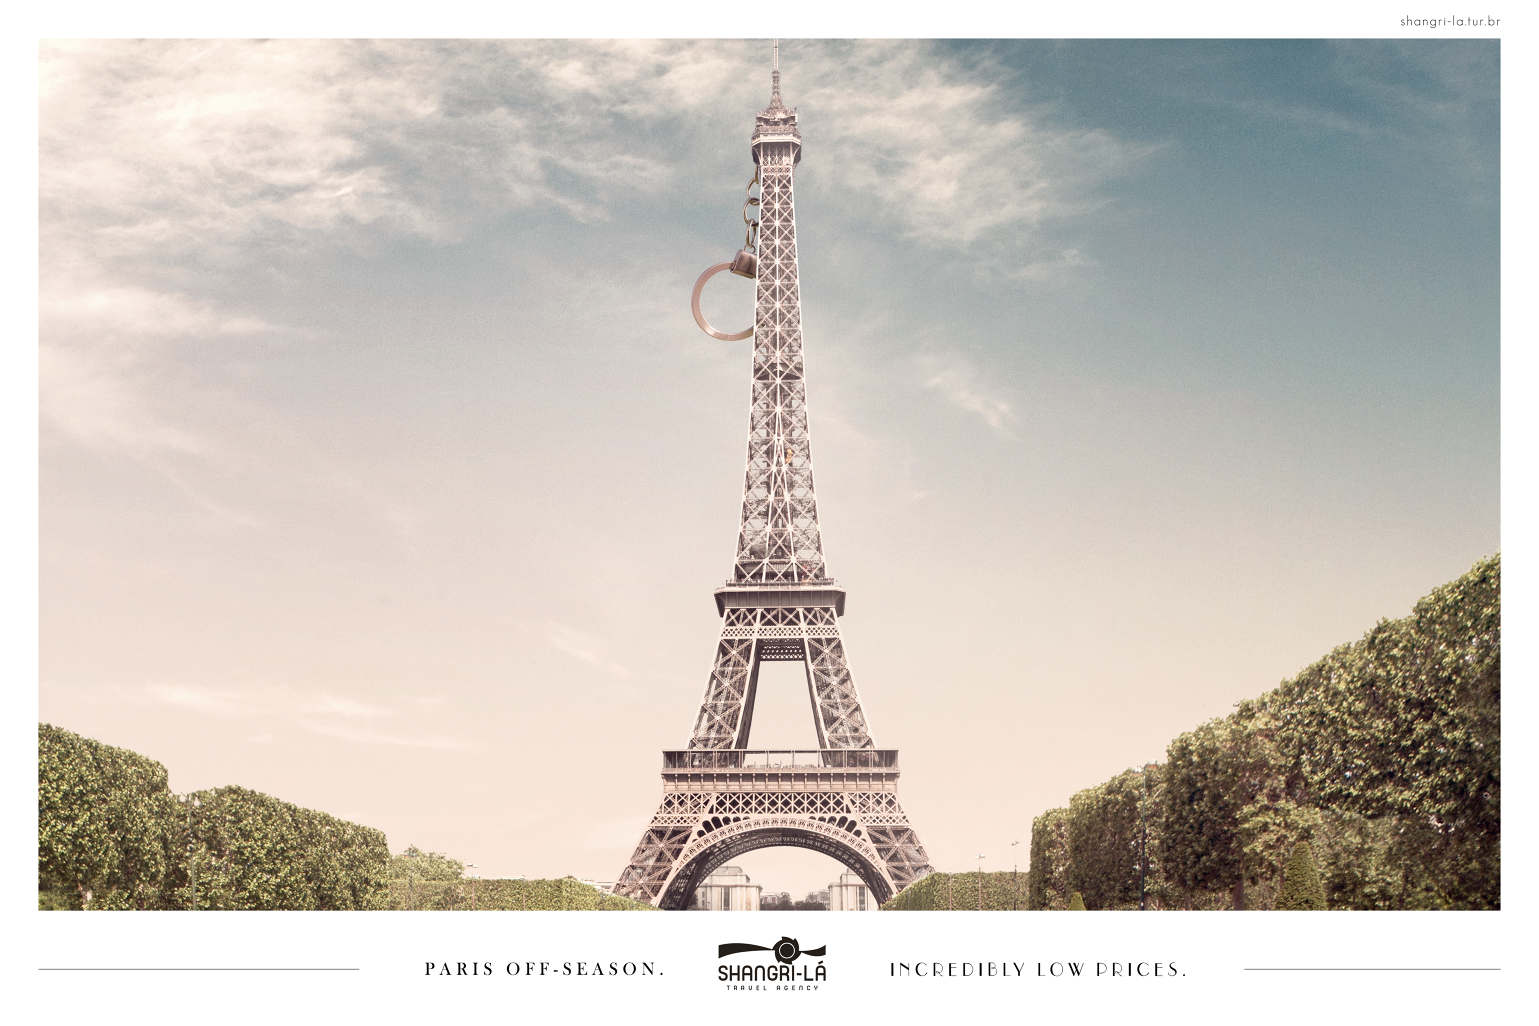 Shangri l travel agency new york london paris adeevee for Advertising agency paris